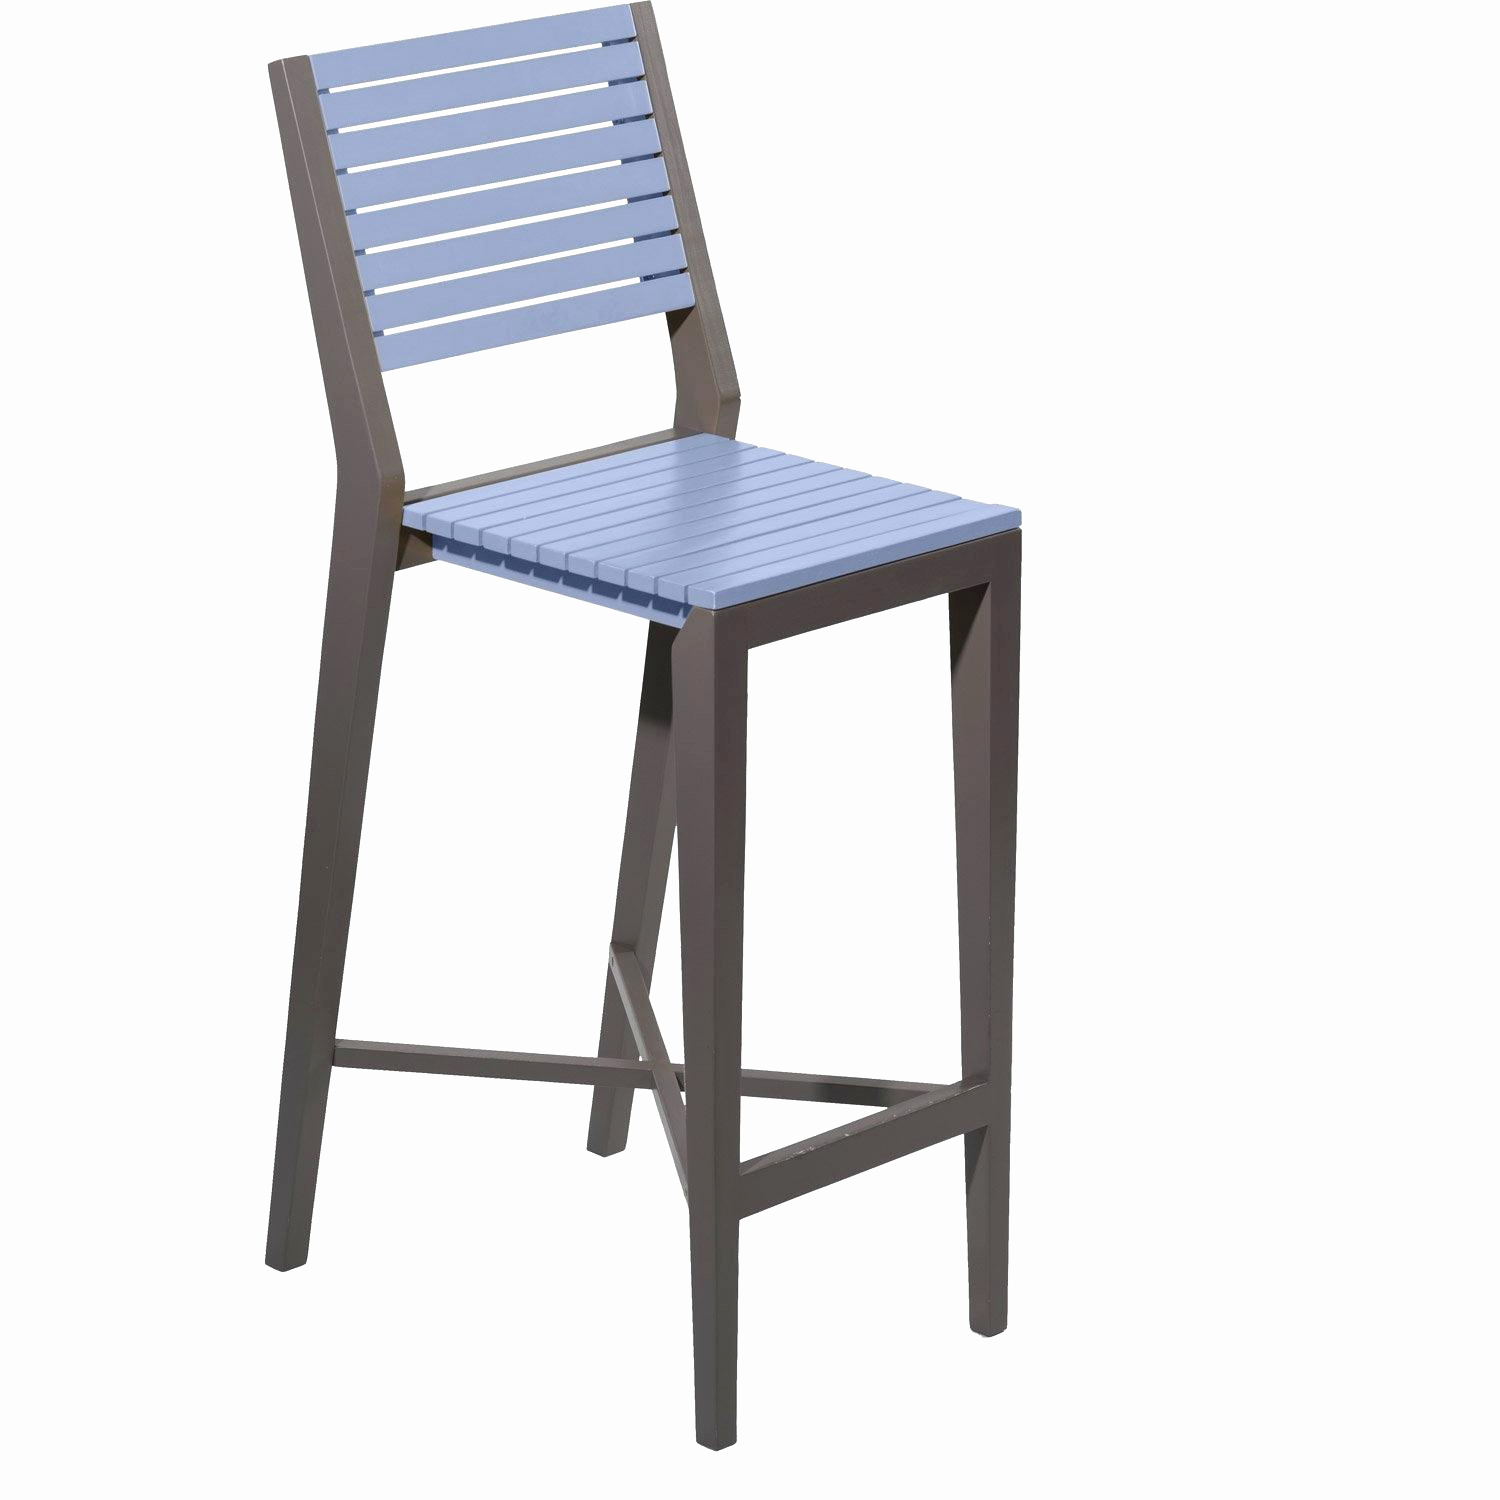 chaise de jardin bois metal photo de 60 das beste von chaise de jardin pliable mobel ideen site 0d a of chaise de jardin bois metal